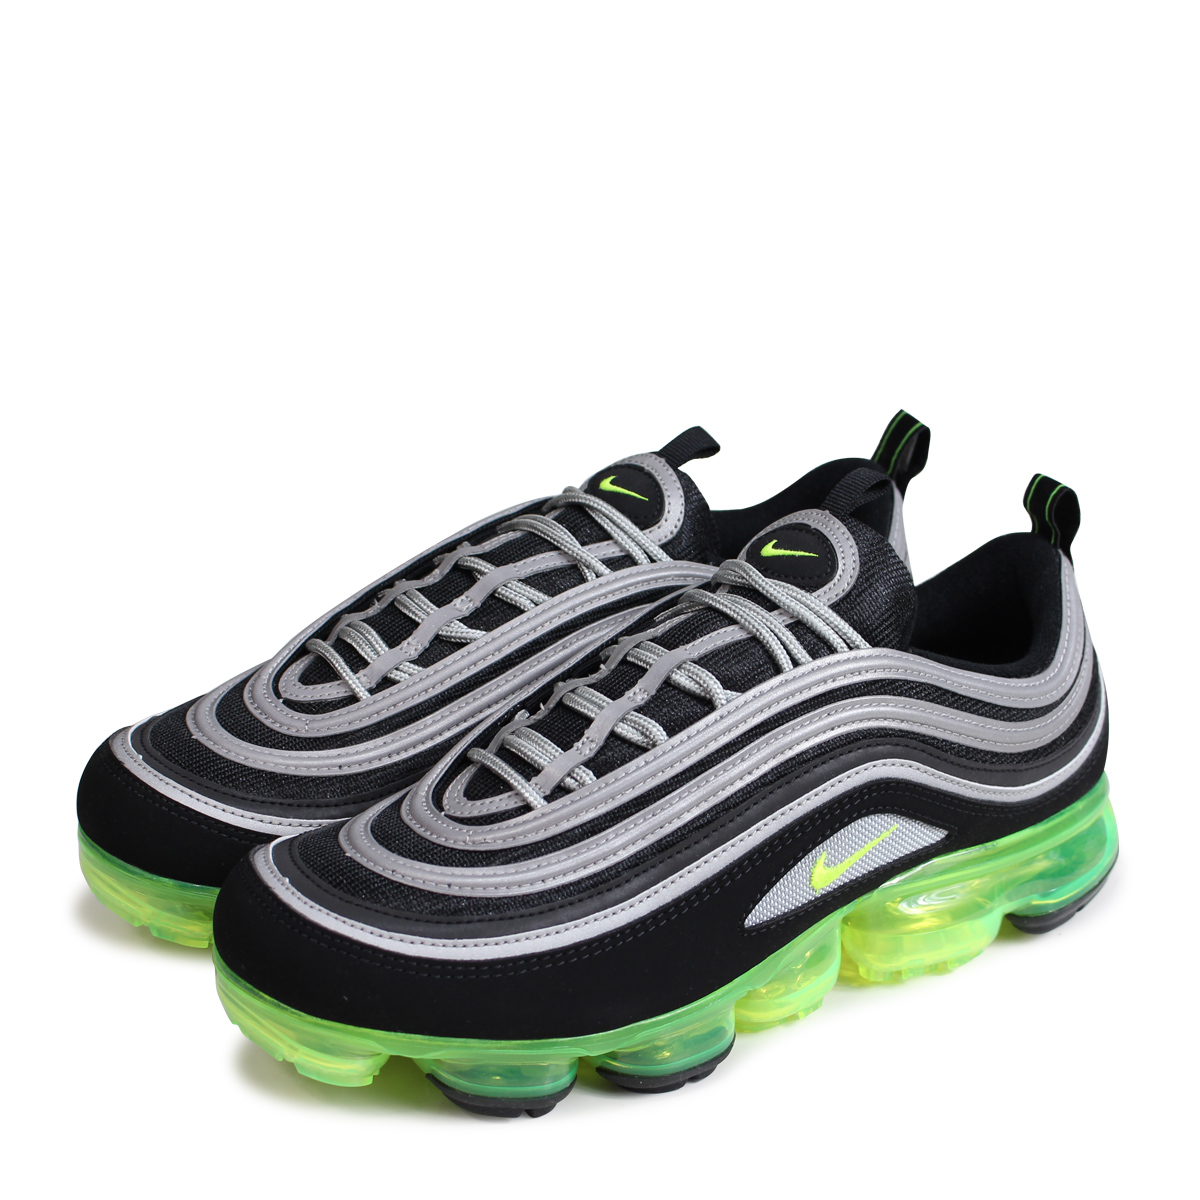 wholesale dealer c0ad9 0d70e NIKE AIR VAPORMAX 97 Nike air vapor max 97 sneakers men AJ7291-001 neon  yellow [load planned Shinnyu load in reservation product 5/31 containing]  ...